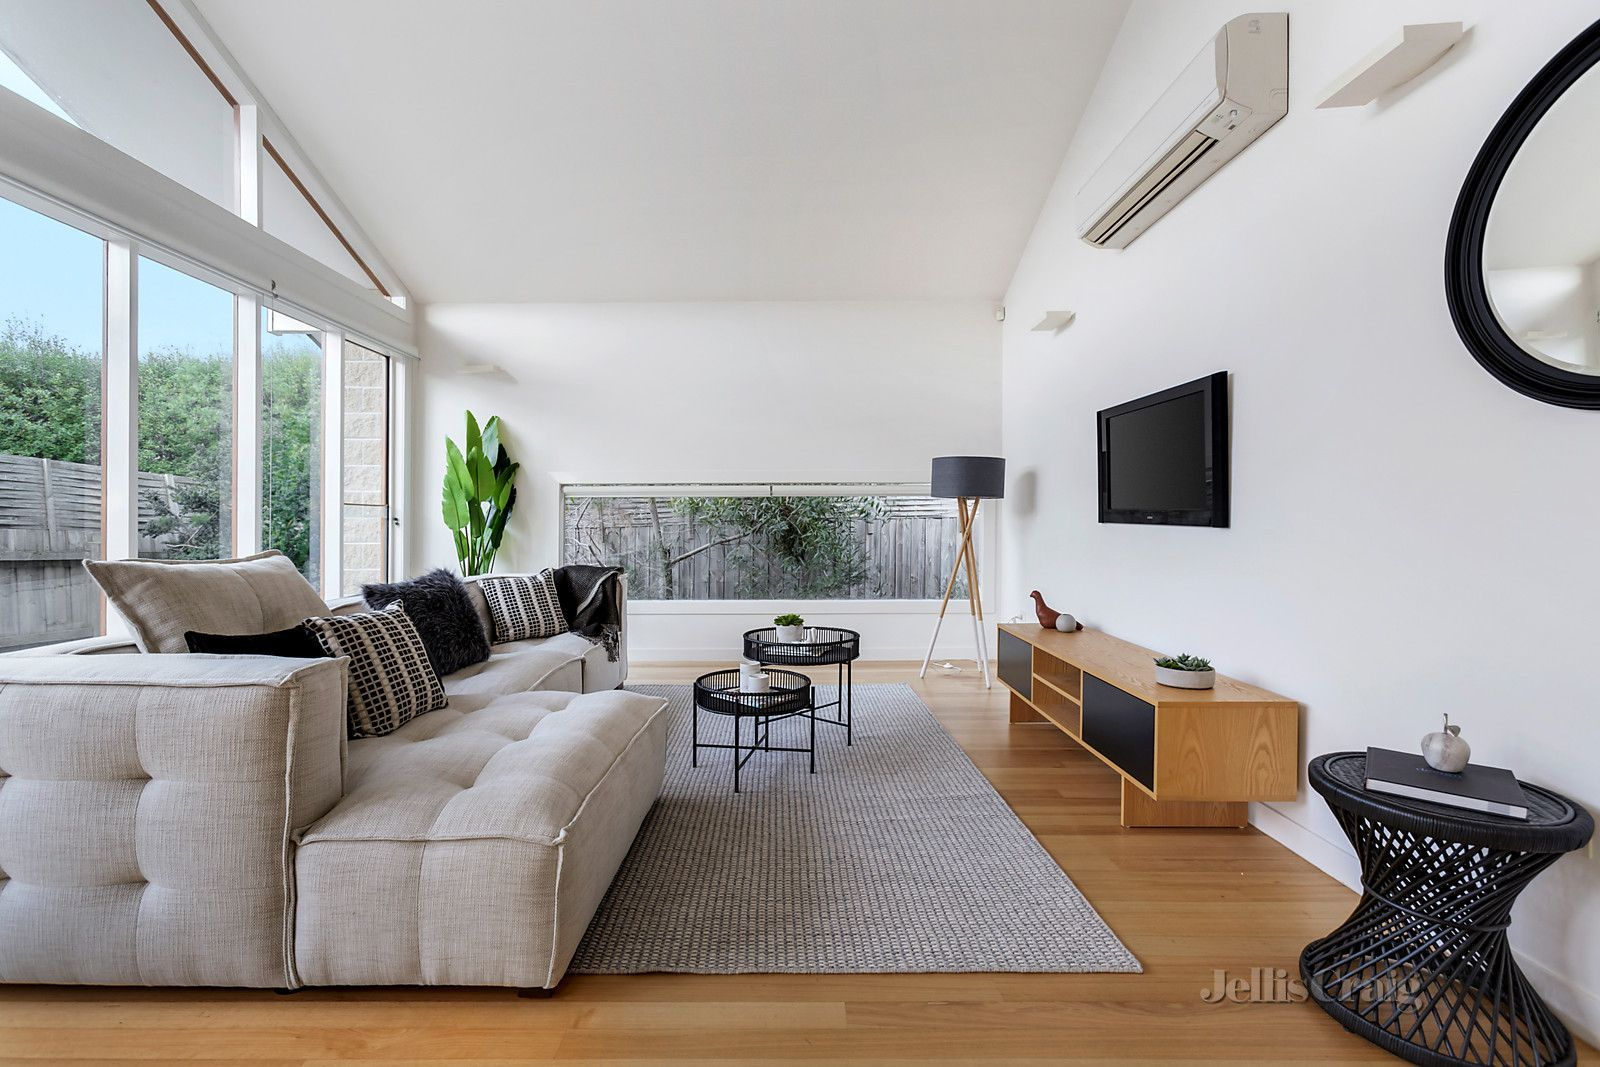 4/56 Belgravia Avenue, Mont Albert North VIC 3129, Image 1